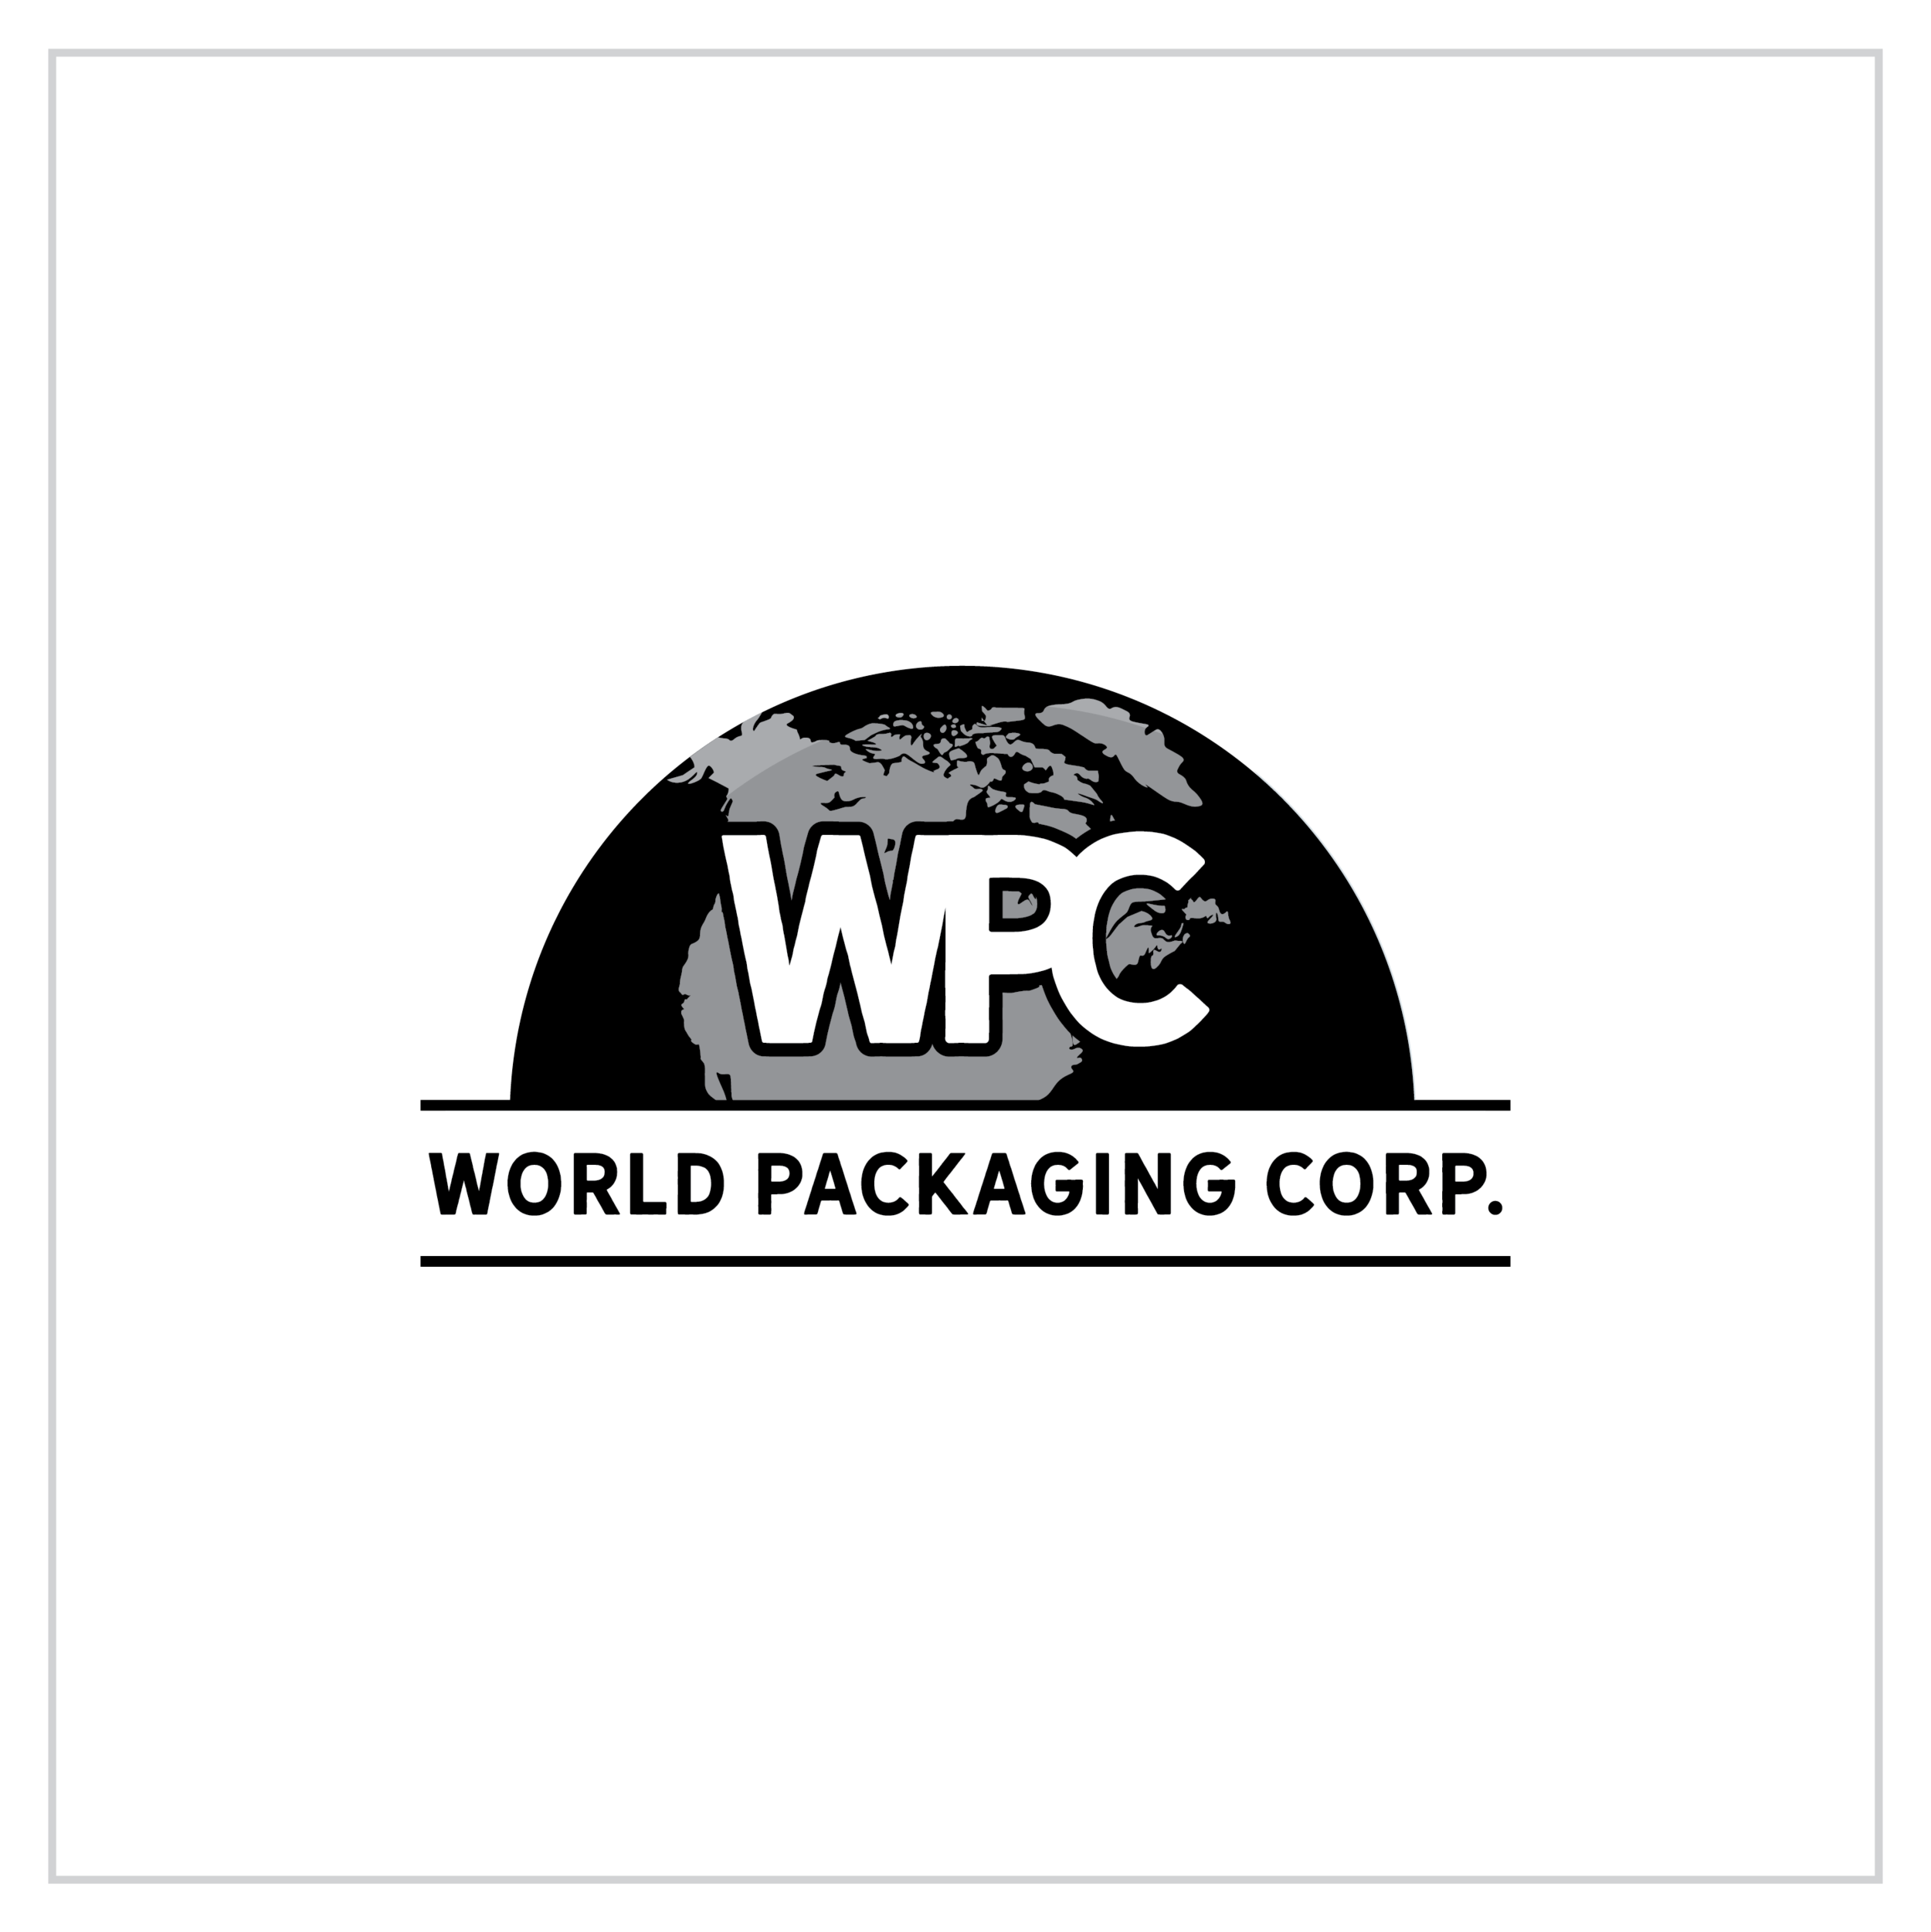 wpc-bw.png